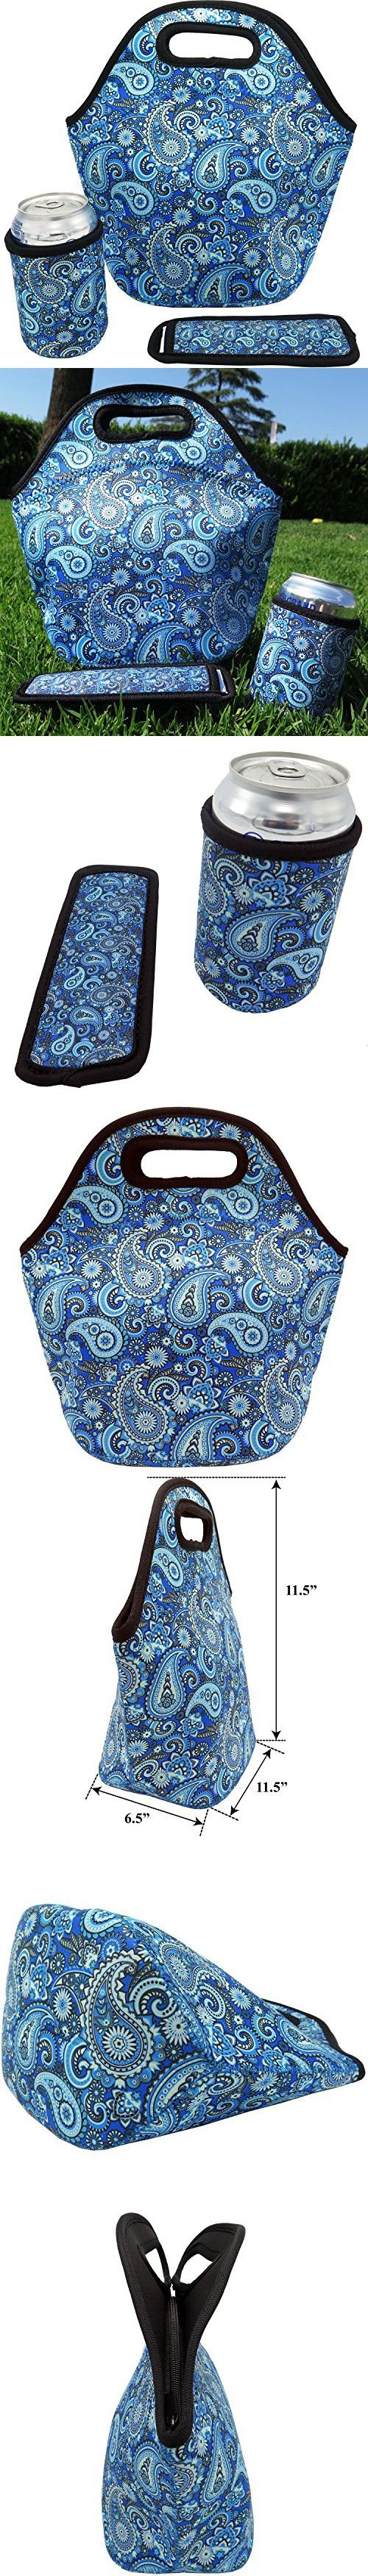 Neoprene Lunch Bag - Insulated Lunch Tote Bags for Women & Girls - Lunch Boxes for Kids & Adults - Adult Lunch Box (Paisley Design Set)